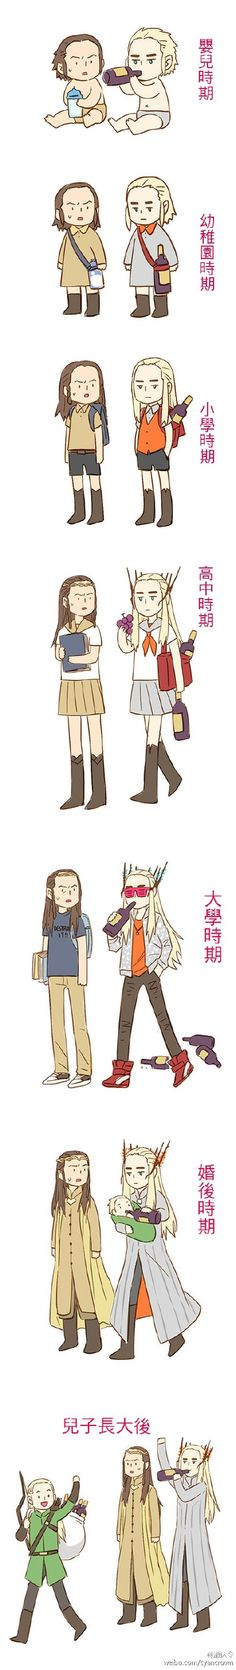 Tales of Mirkwood - Trip I just LOVE Elrond's face every time he sees thranduil drinking wine